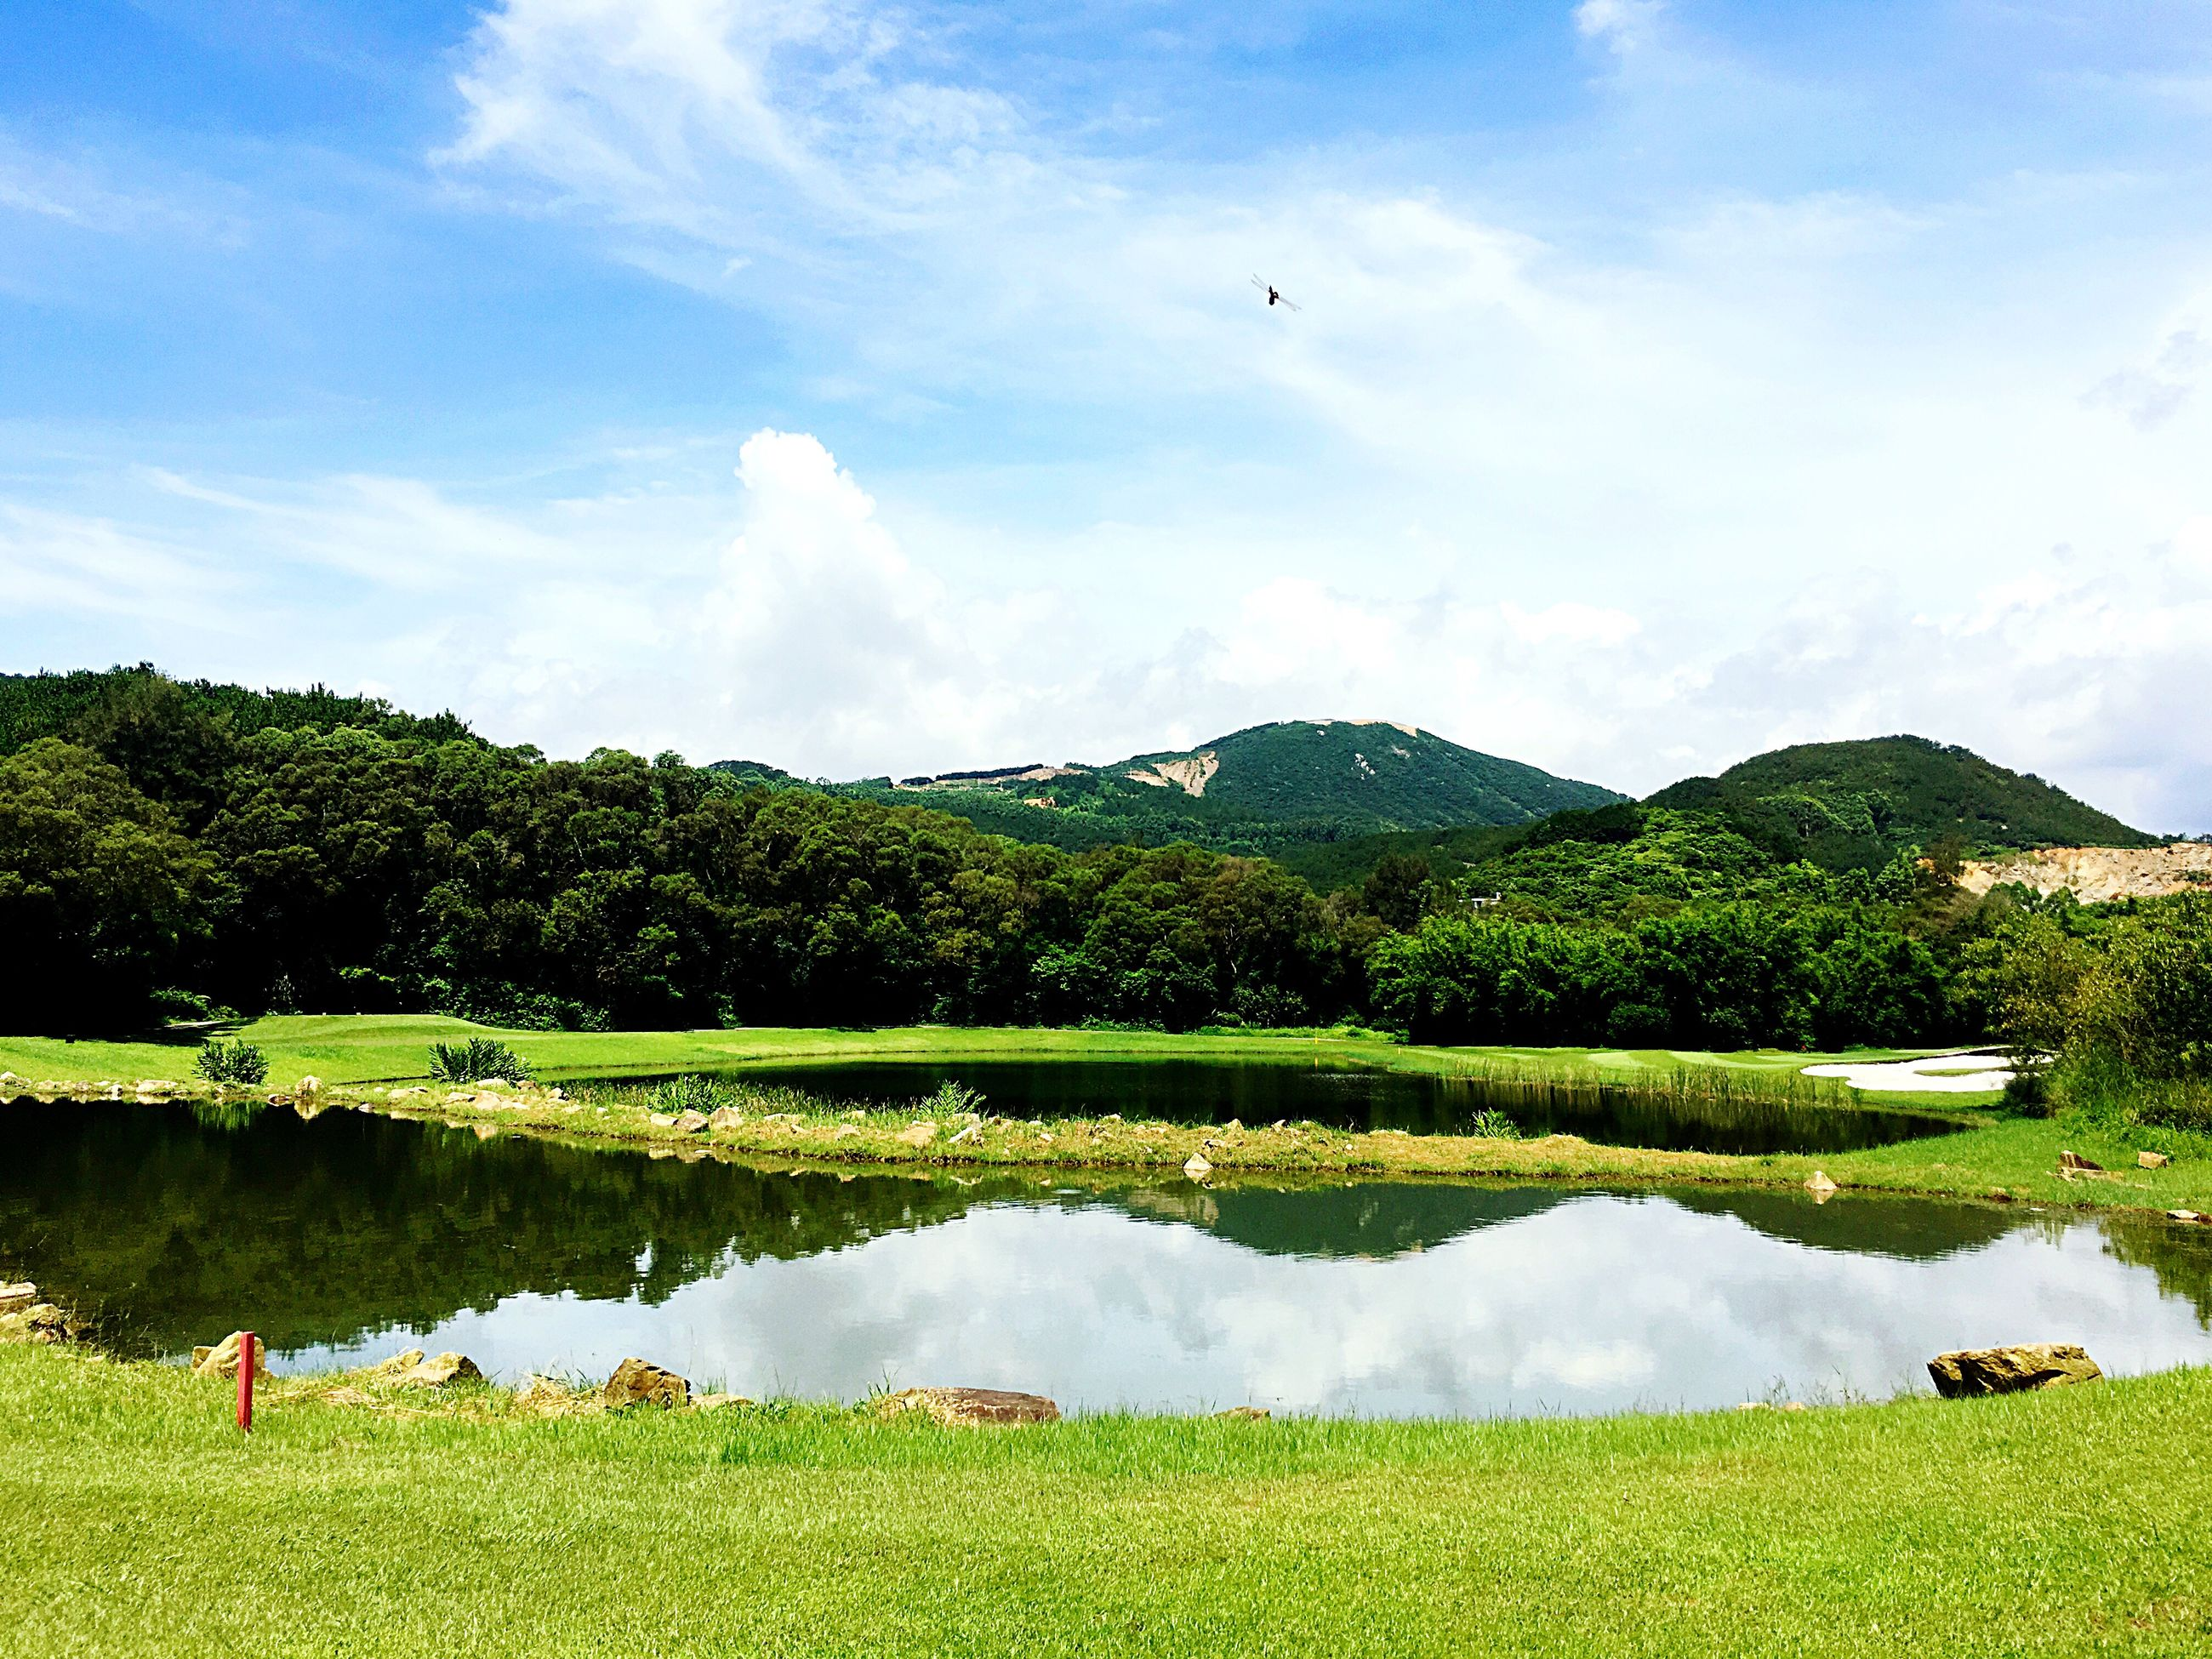 tree, water, grass, sky, scenics, tranquil scene, green color, beauty in nature, lake, tranquility, mountain, landscape, nature, cloud - sky, growth, cloud, idyllic, day, travel destinations, tourism, vacations, outdoors, non-urban scene, green, grassy, lush foliage, plant